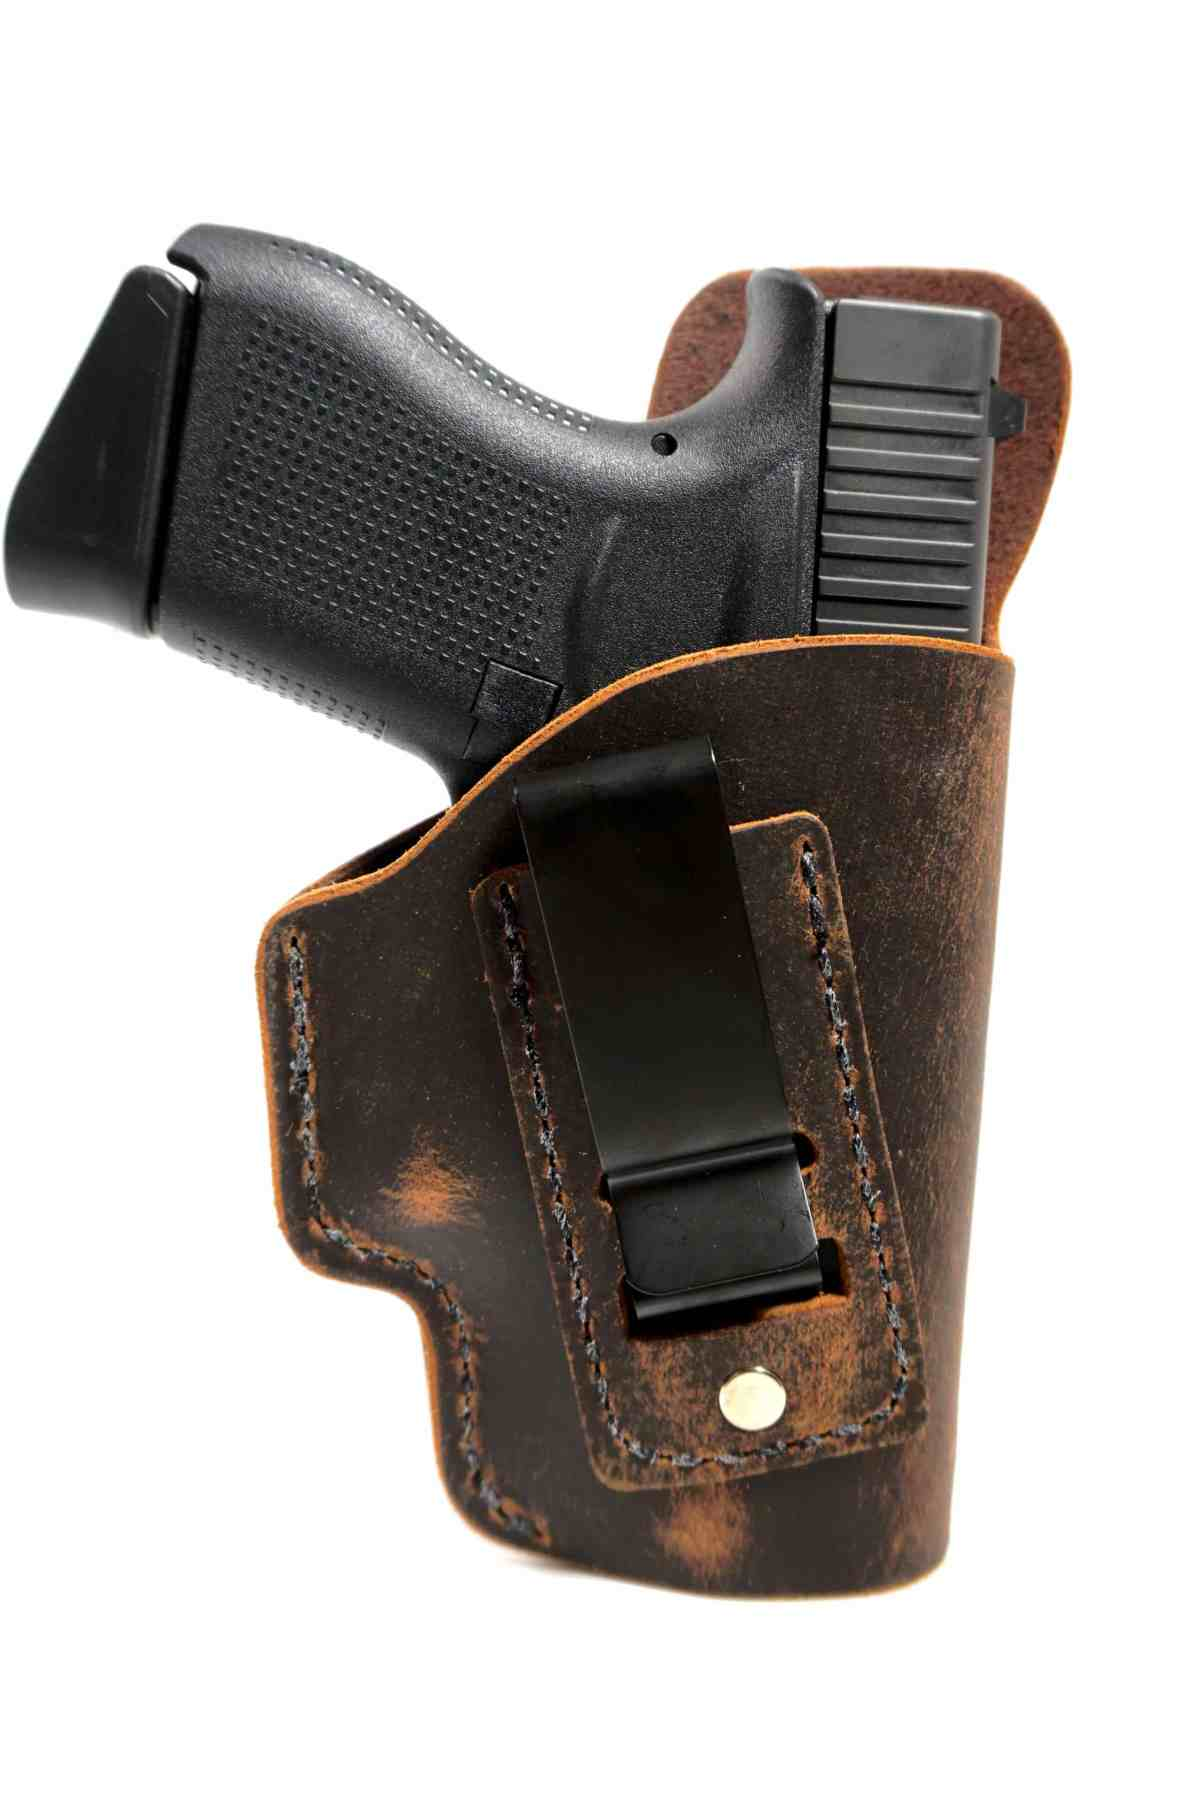 Soft IWB Leather Holsters